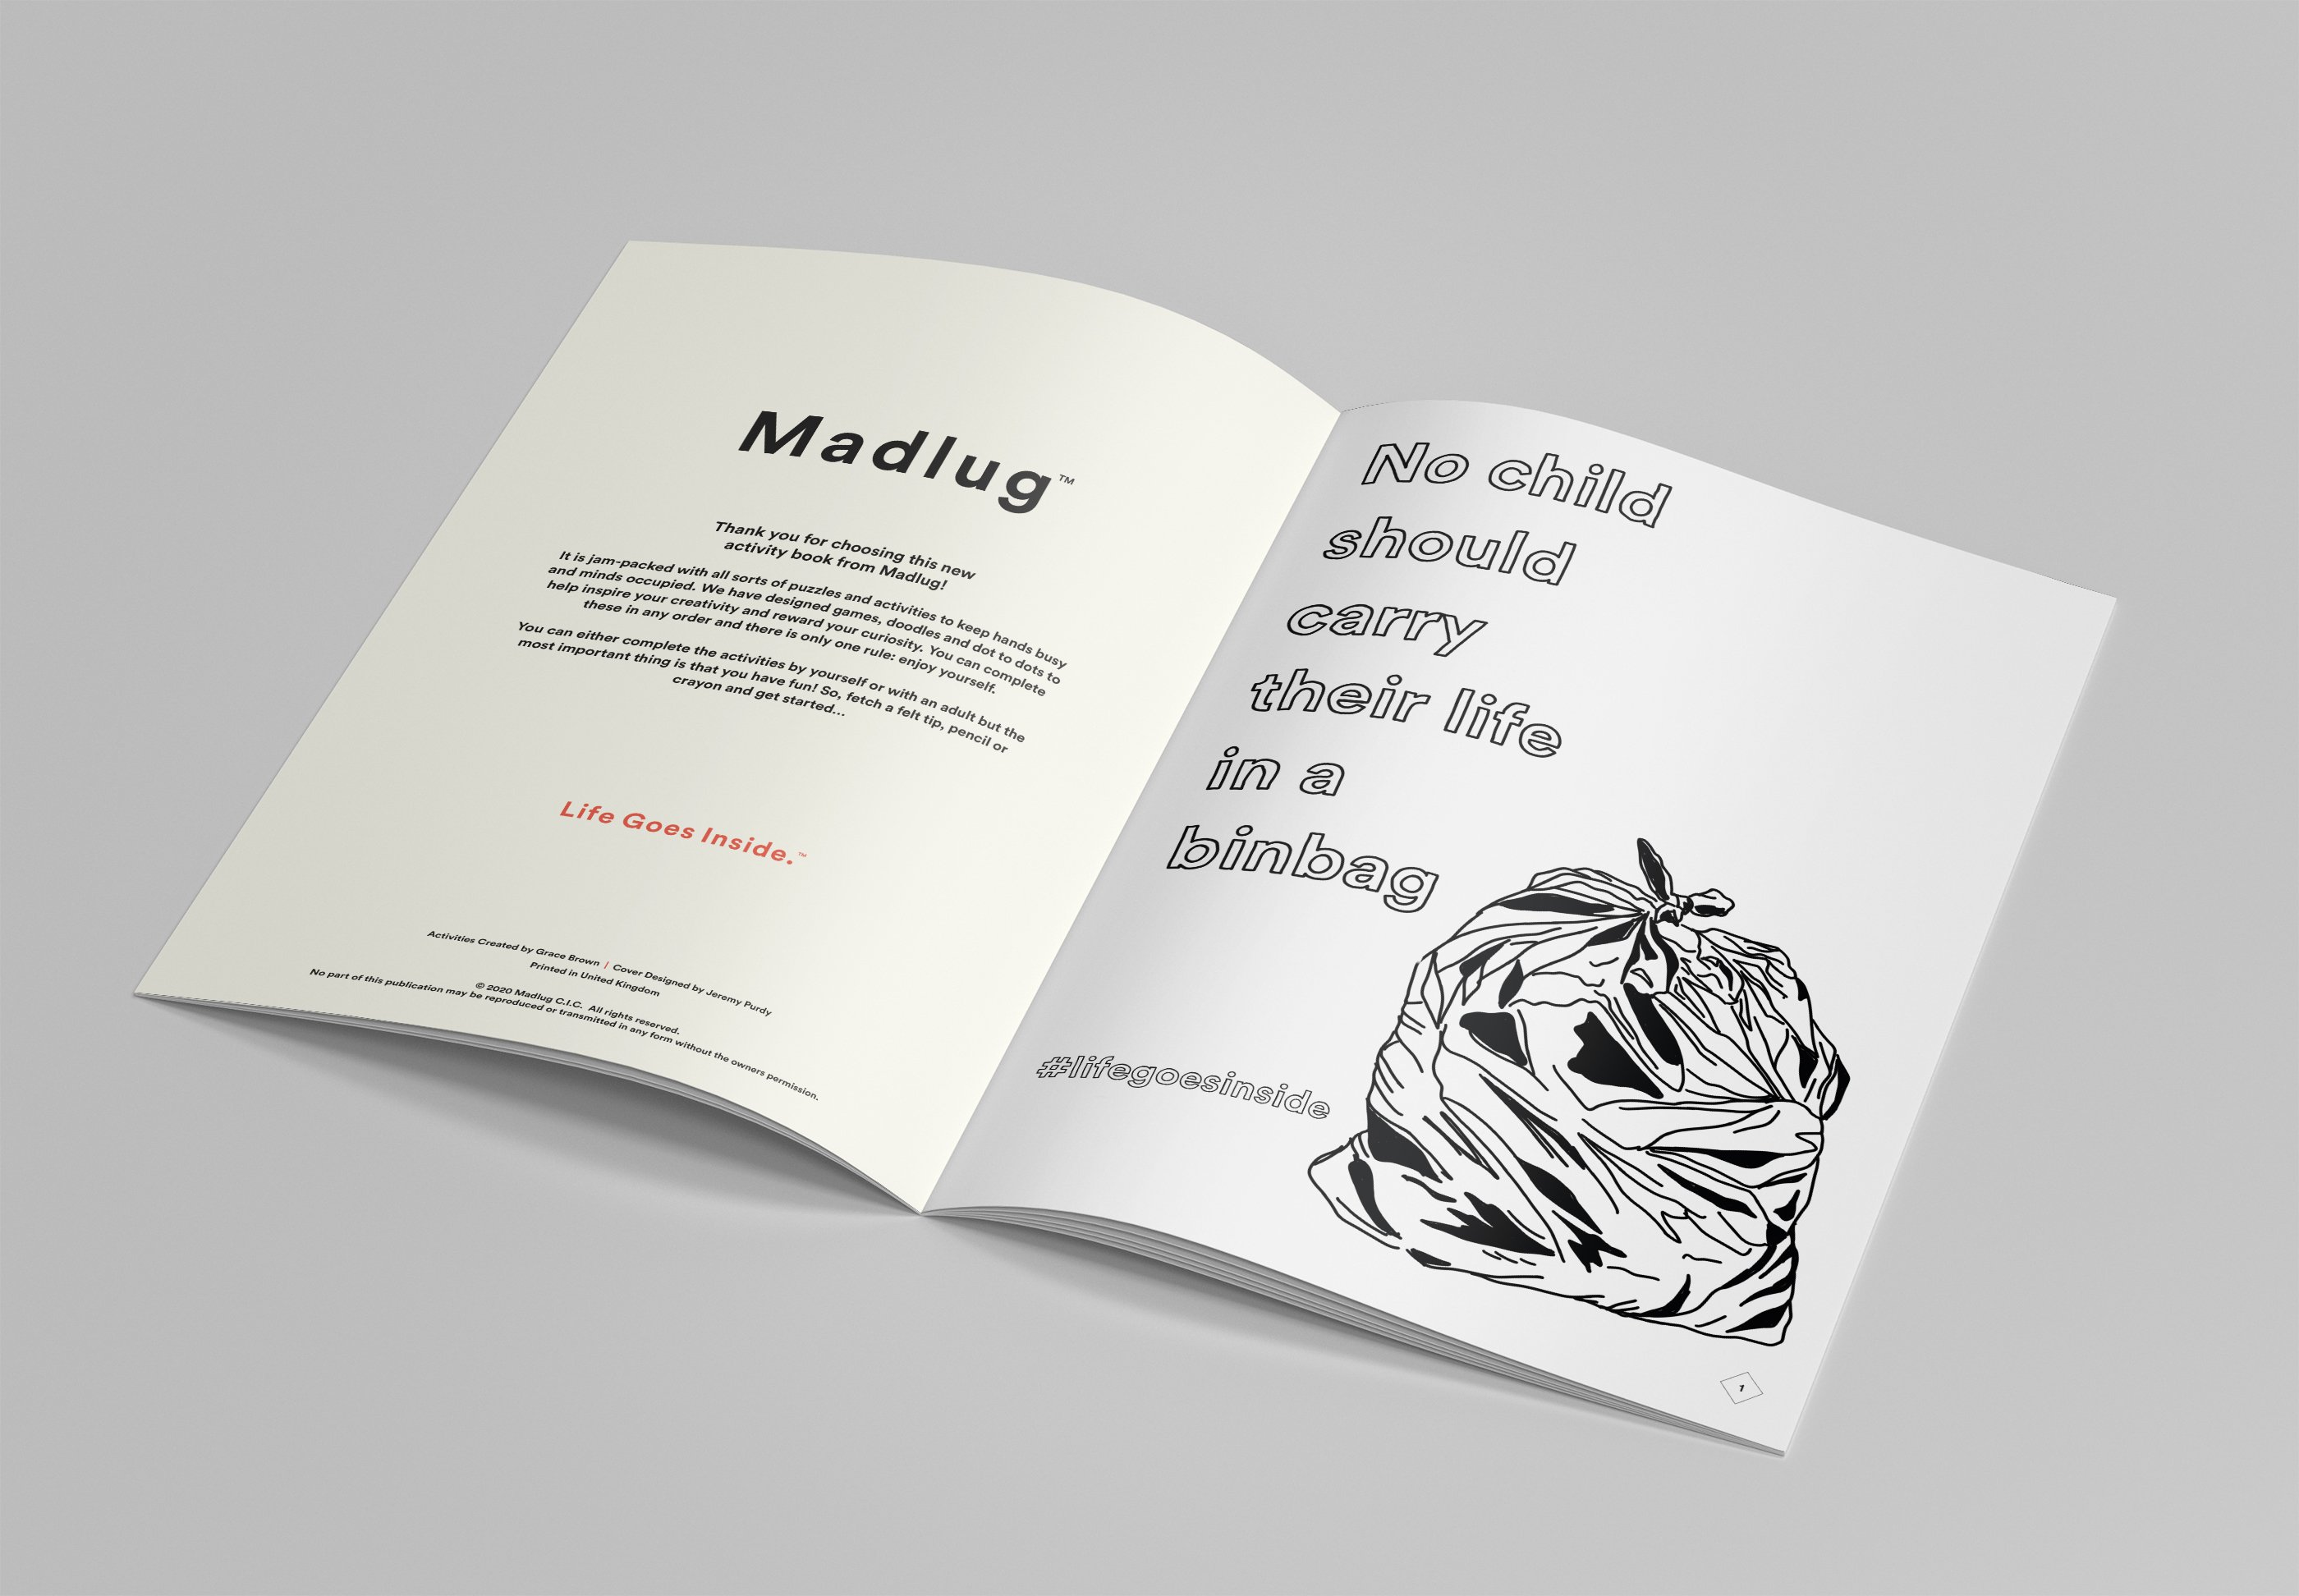 Madlug activity book - inside pages